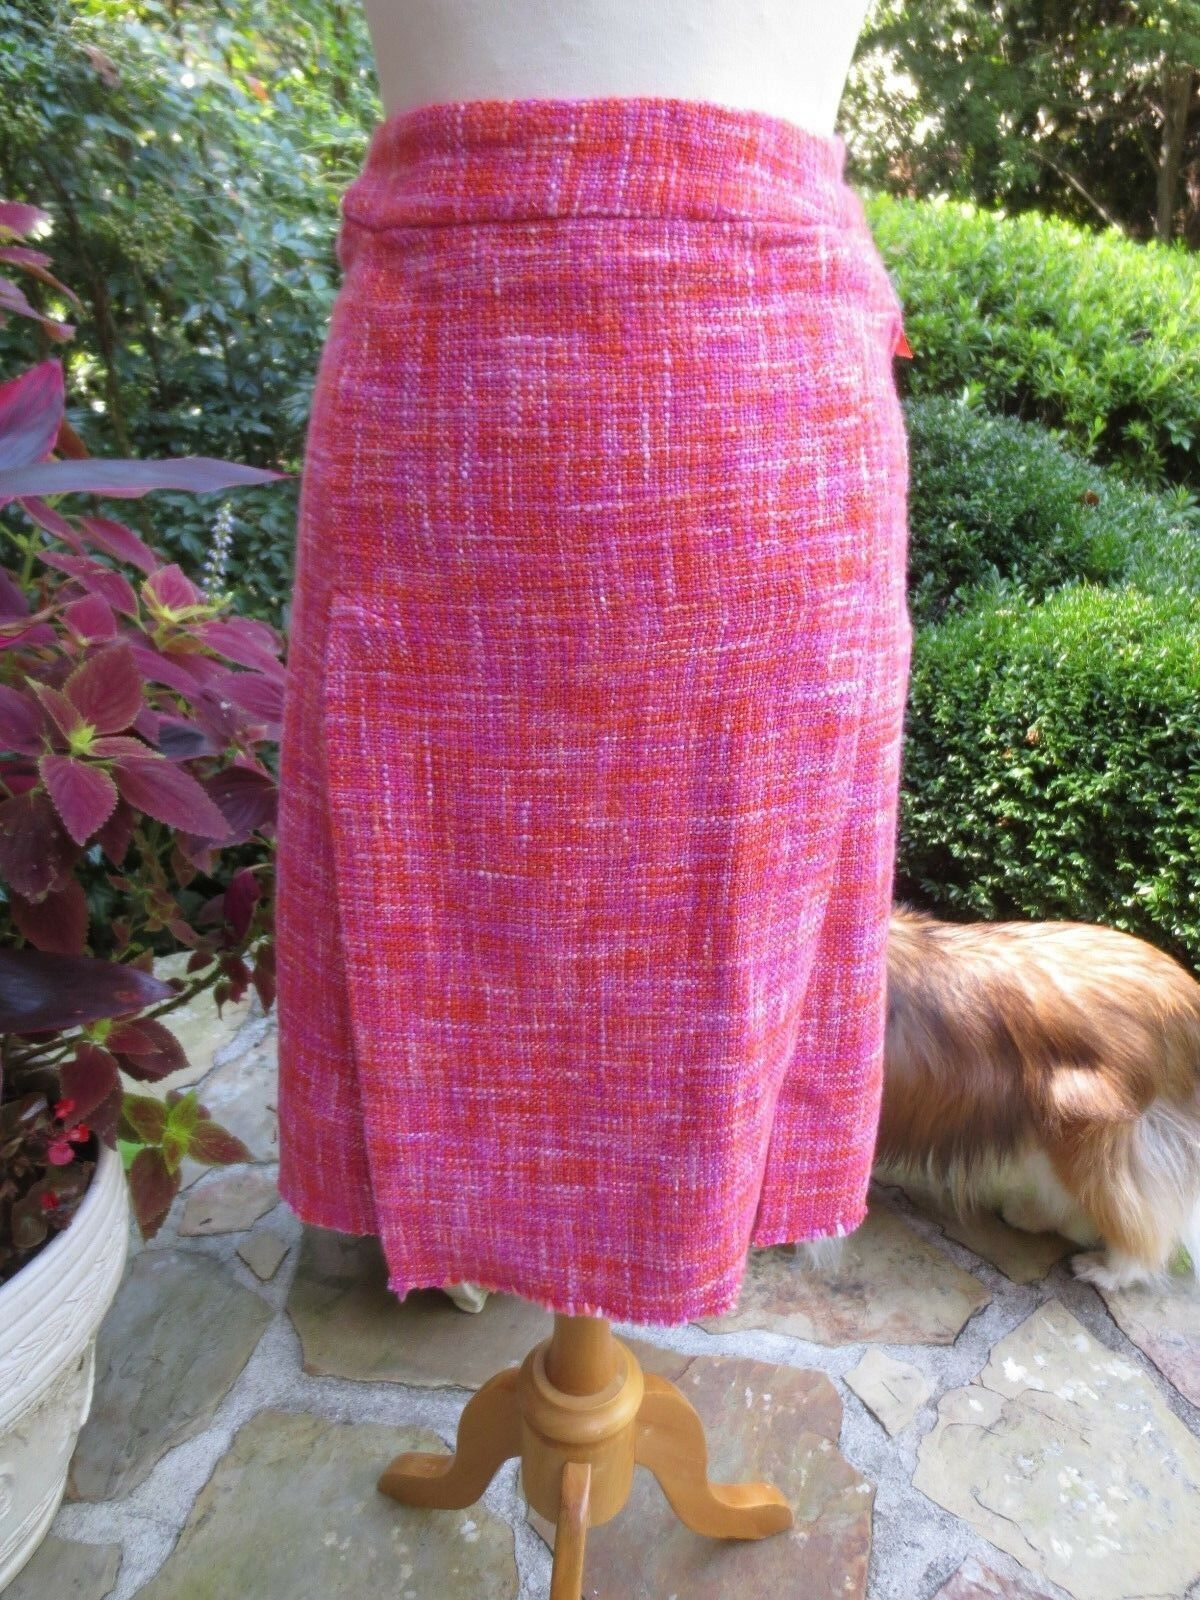 PAUL SMITH bluee Label Pink Cotton Tweed Carwash Skirt Sz 38, TRIPLE MINT COND